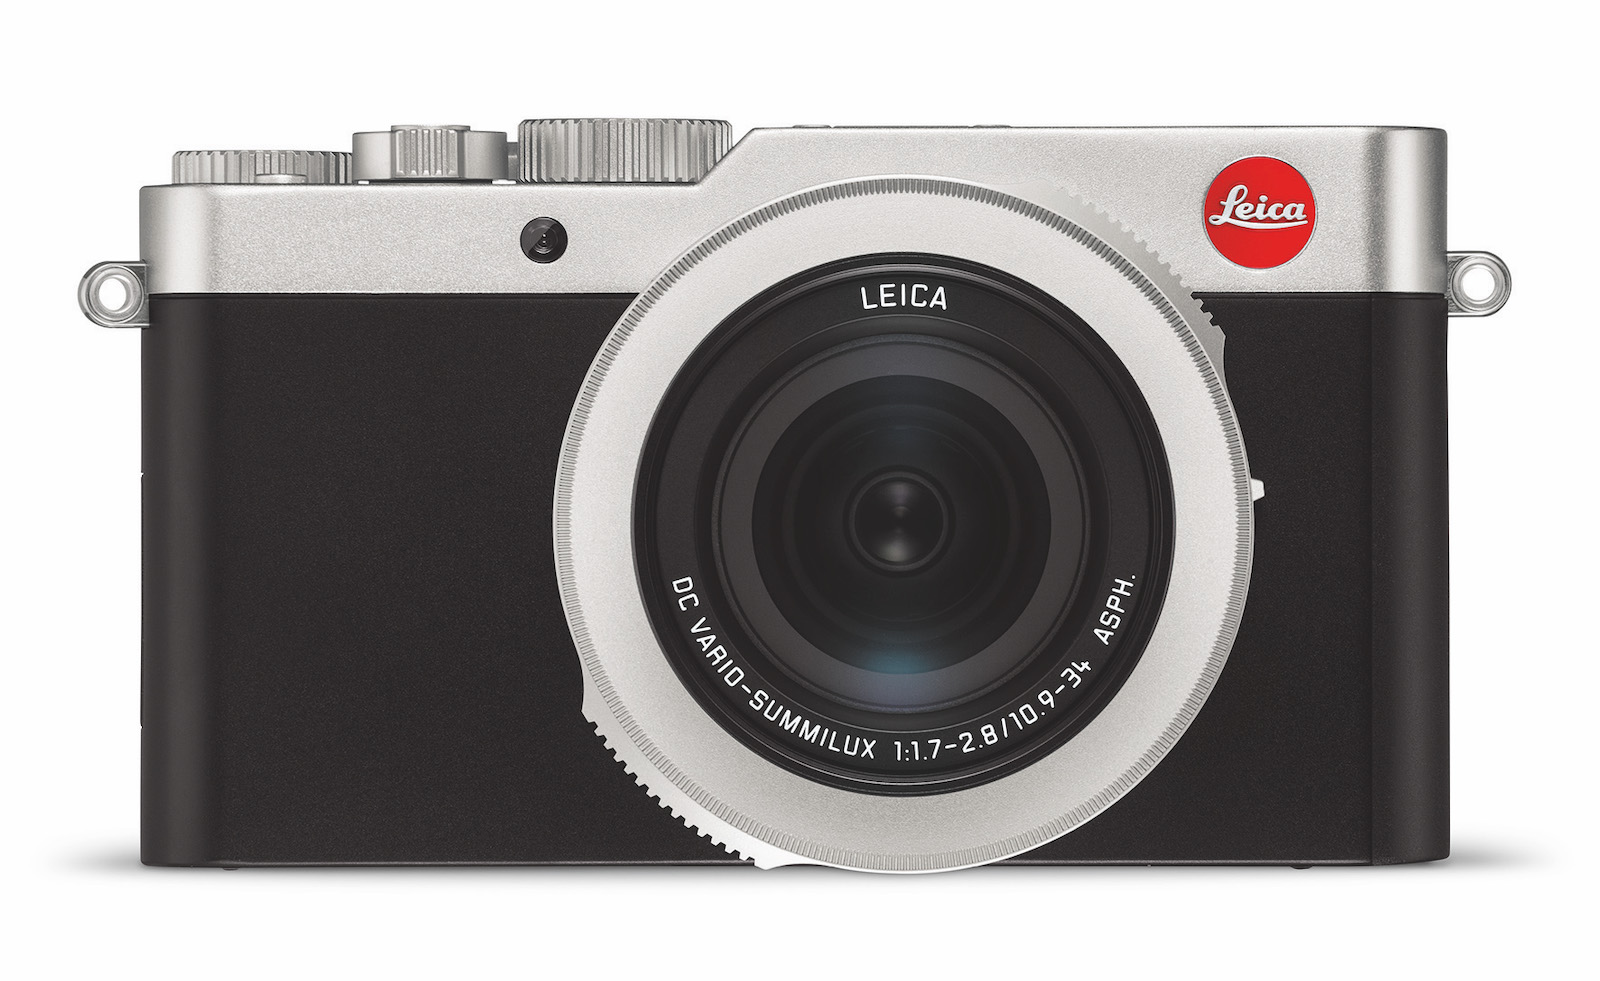 Leica has updated their D-Lux camera with a versatile lens, a  high-resolution image sensor and touchscreen display, Bluetooth  connectivity, USB-C charging ...